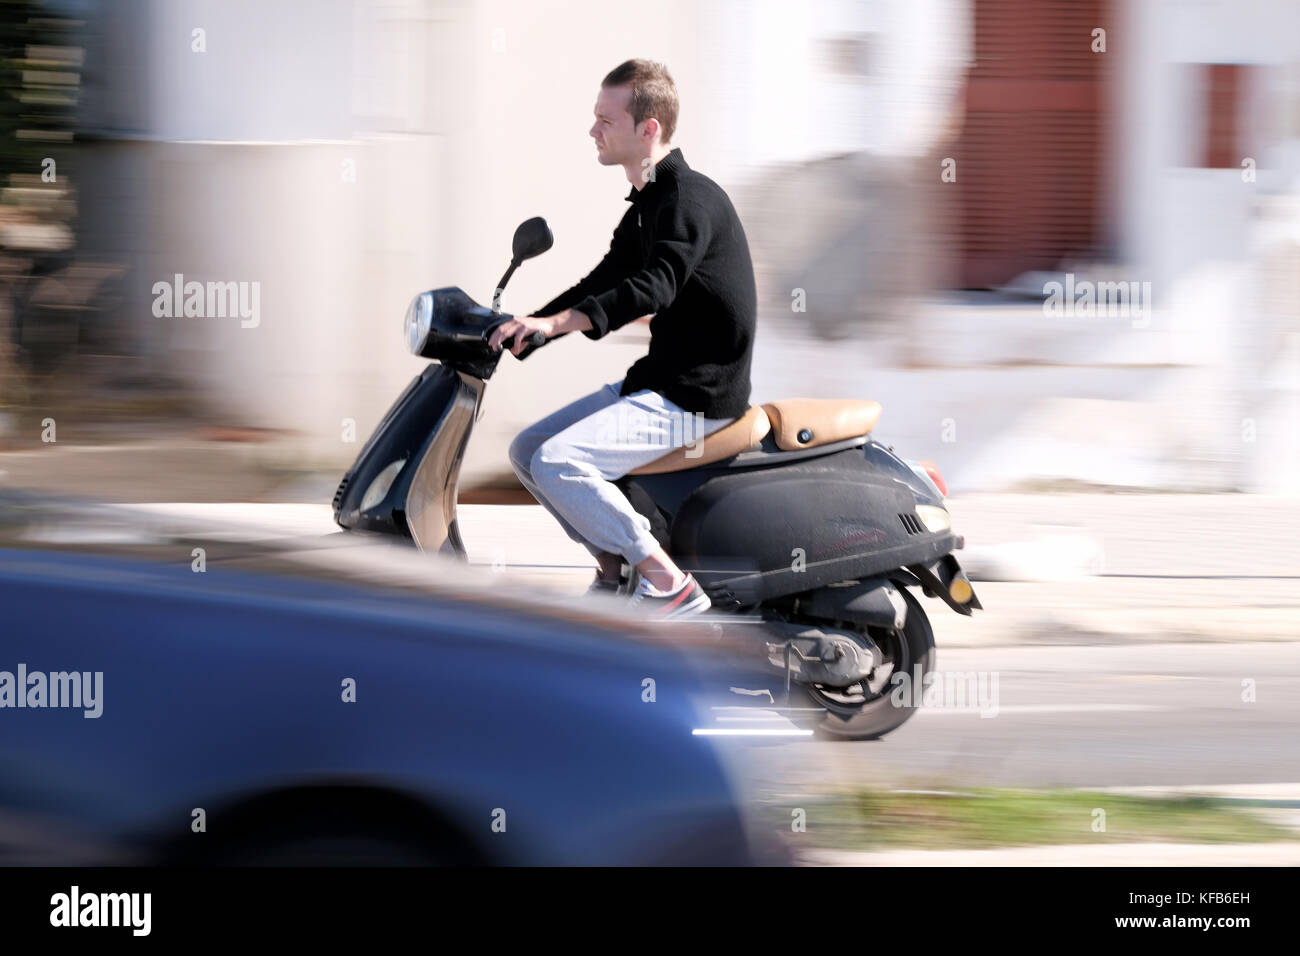 A youth riding a scooter at speed along the road. The shot is panned giving an impression of movement. Taken near - Stock Image